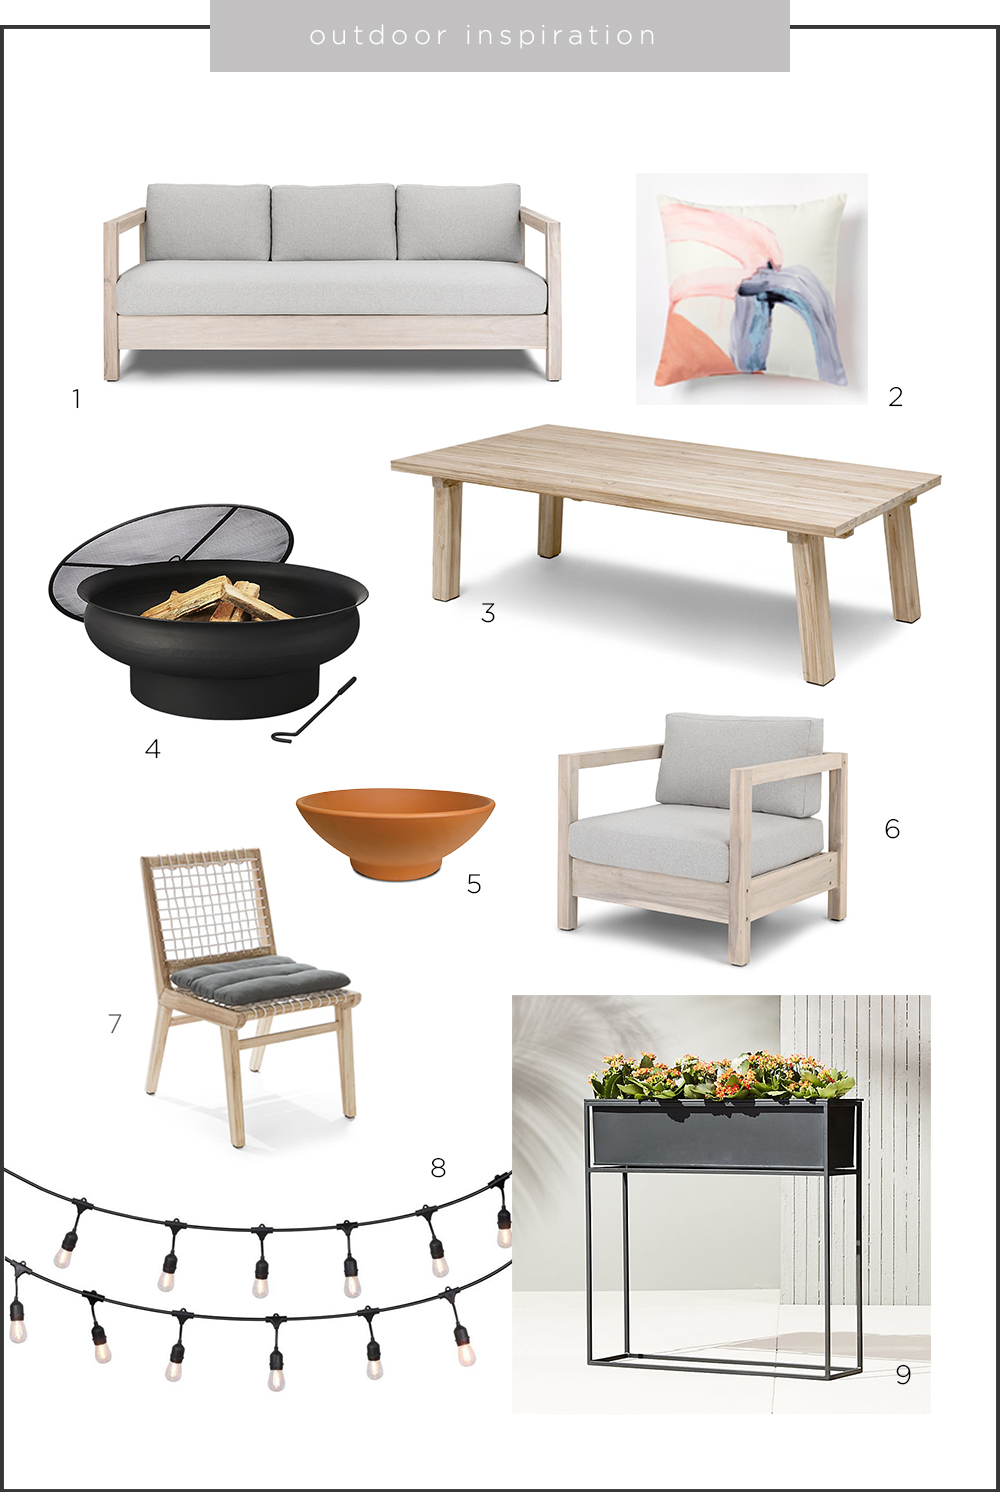 1.  Arca Driftwood Gray Sofa  | 2.  Tuscan Coral Outdoor Pillow  | 3.  Teaka Dining Table for 8  | 4.  Urli Firepit  | 5.  Low Bowl Planter  | 6.  Arca Driftwood Gray Lounge Chair  | 7.  Teaka Dining Chair  | 8.  LED String Lights  | 9.  Kronos Outdoor Planter